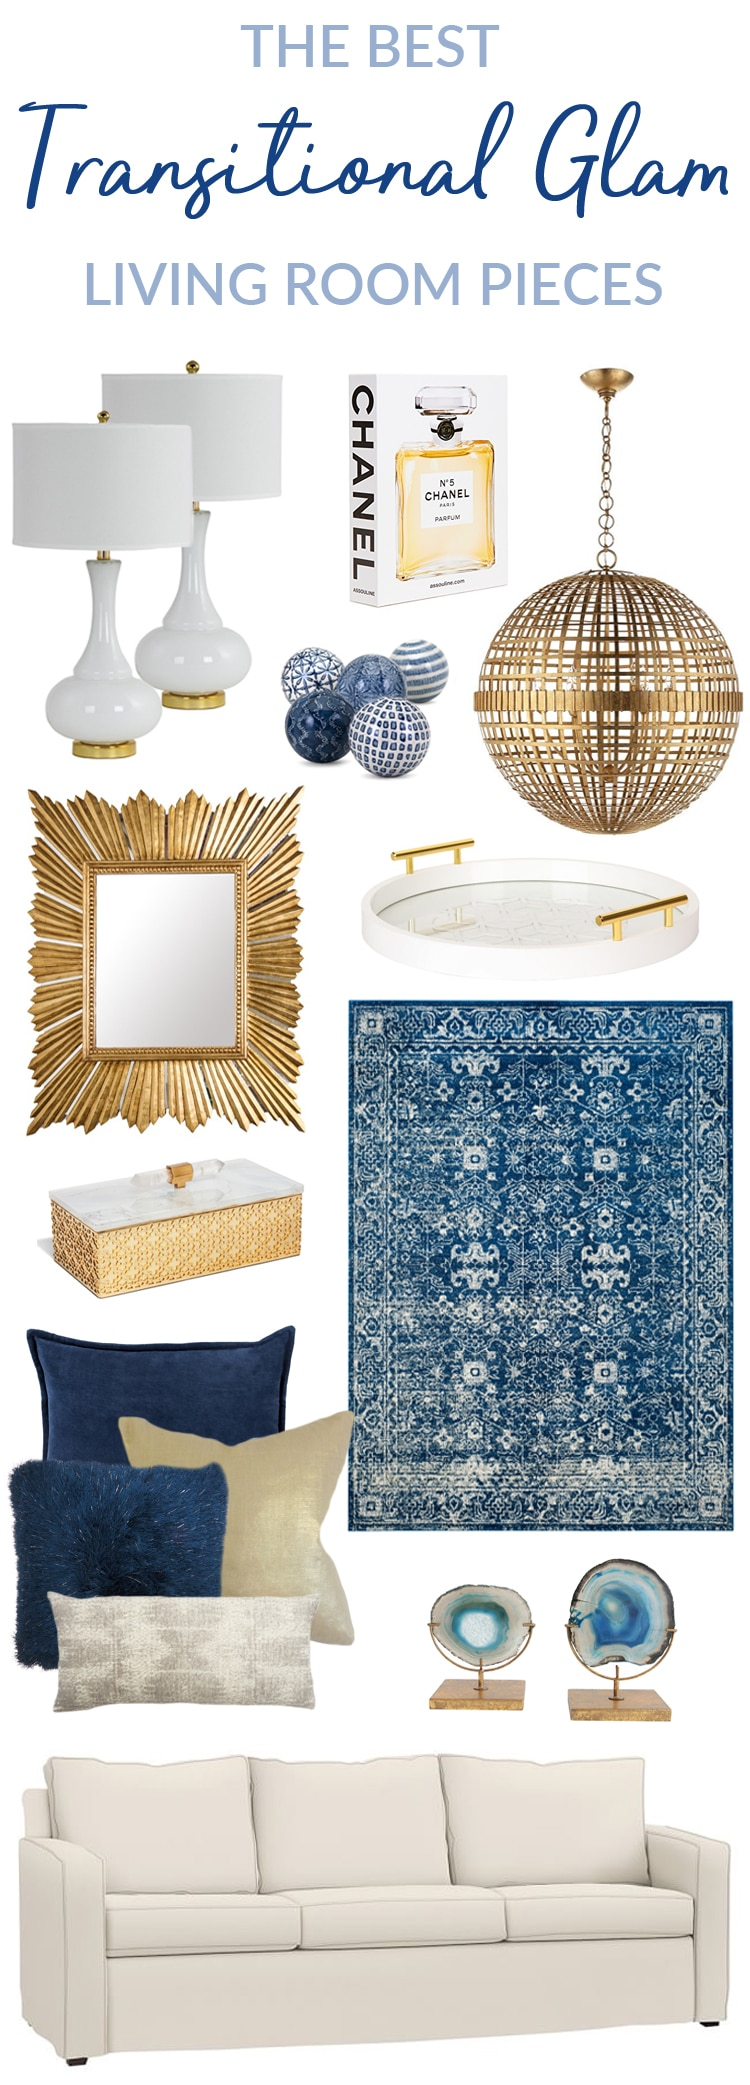 See the BEST Transitional Glam Living Room Pieces! These furniture, lighting, rug and wall accent pieces will update your decor instantly. If you love traditional meets contemporary style, metallics, gold, white and blue then these decor ideas are for you! #transitional #decor #decorideas #livingroom #glam